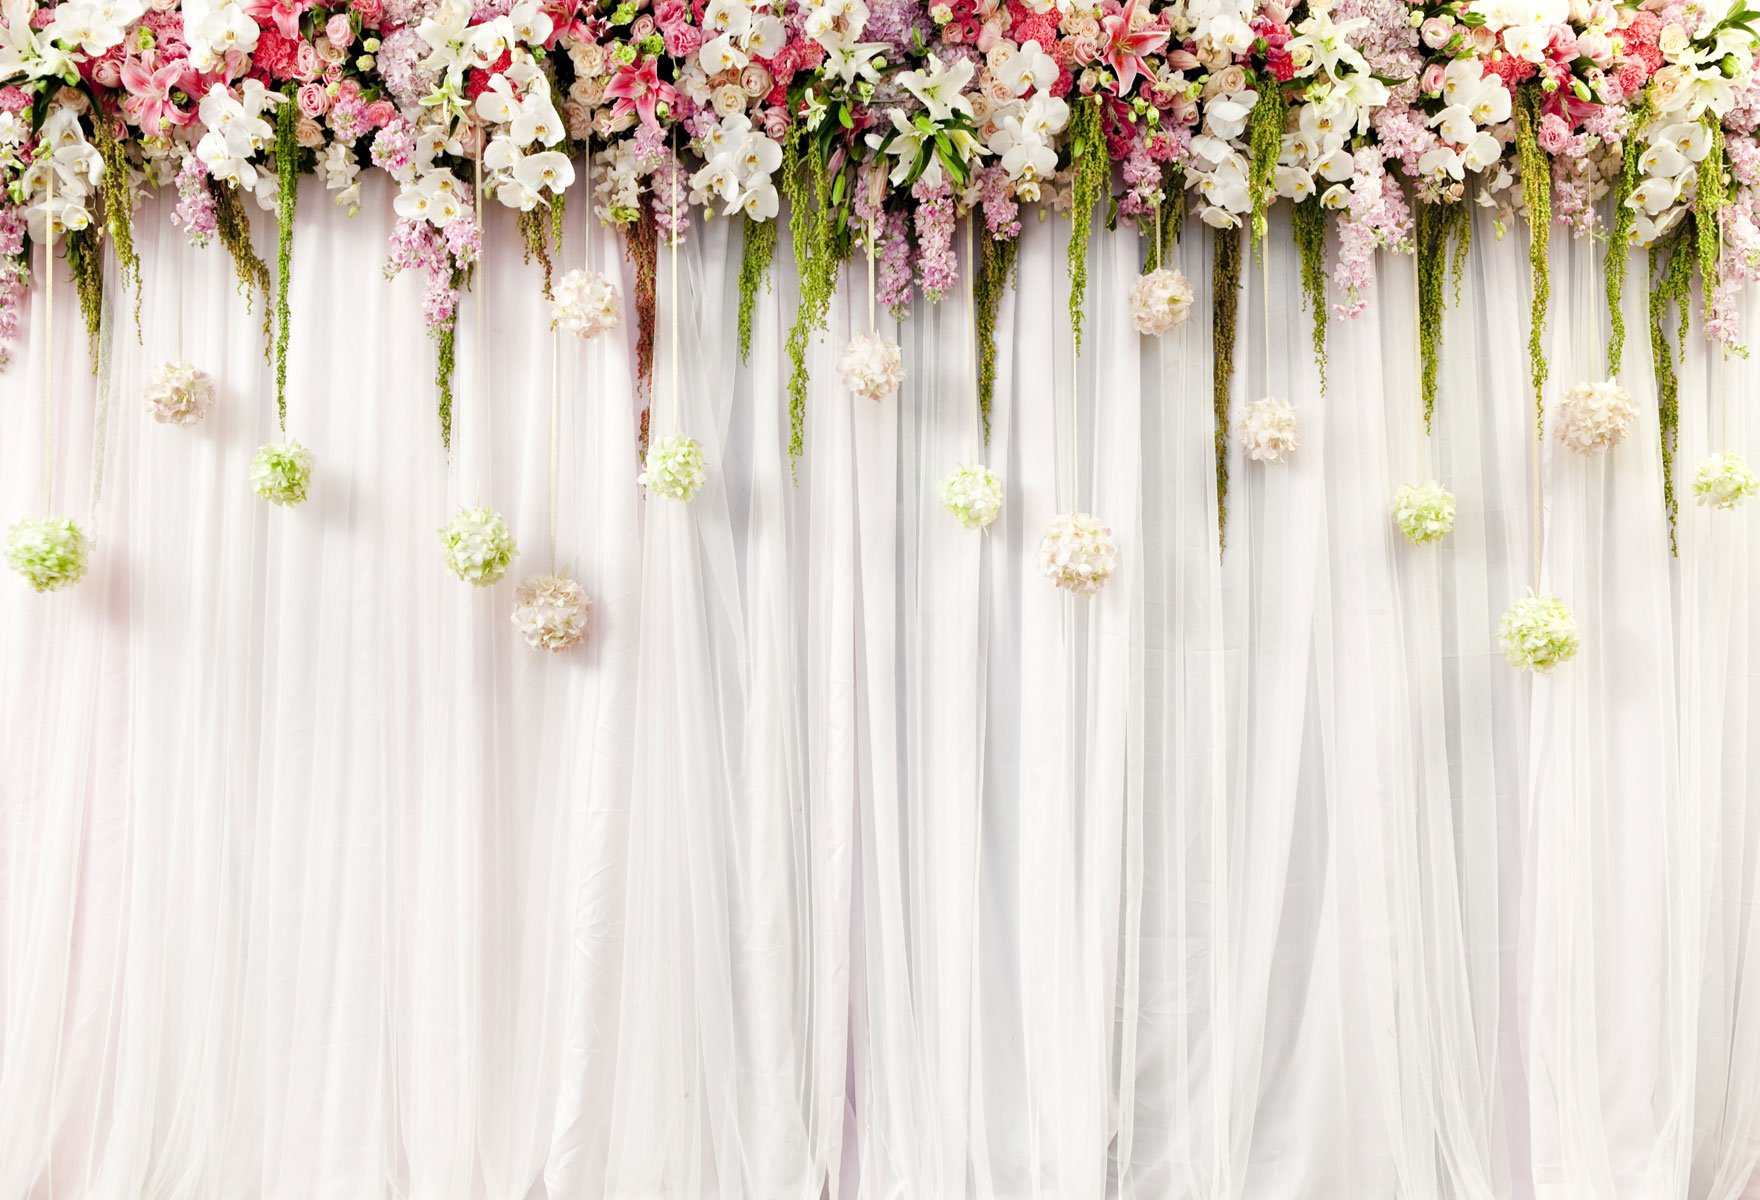 Kate Wedding Photo backdrops White Wedding Party Backgrounds for Photography Studio Flower Backdrop 10x10ft(3x3m) by Kate